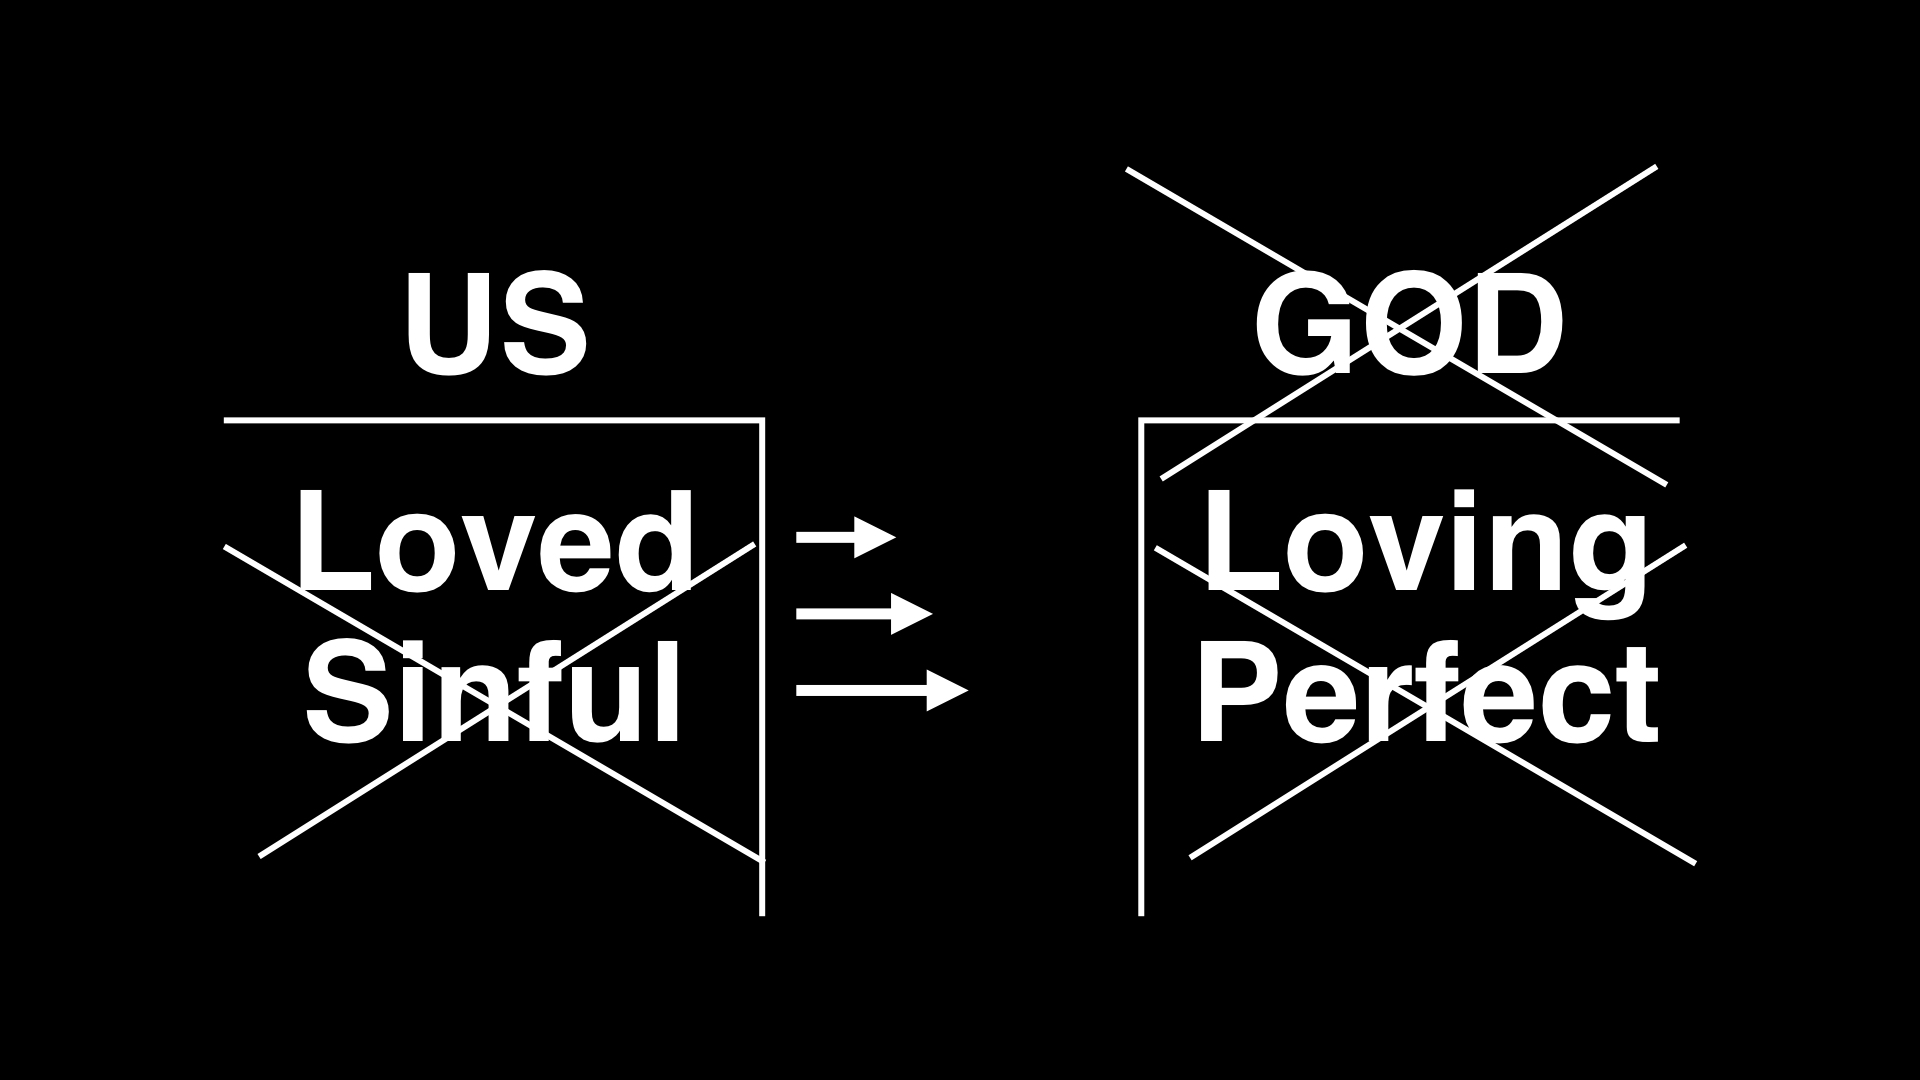 Still others try to bridge the gap between us and God through religious activities and good deeds. Maybe they pray or go to church or give to the poor or try to be kind and loving, which, of course, are all good things. But we can't bridge gap created by our sin and God's perfection.